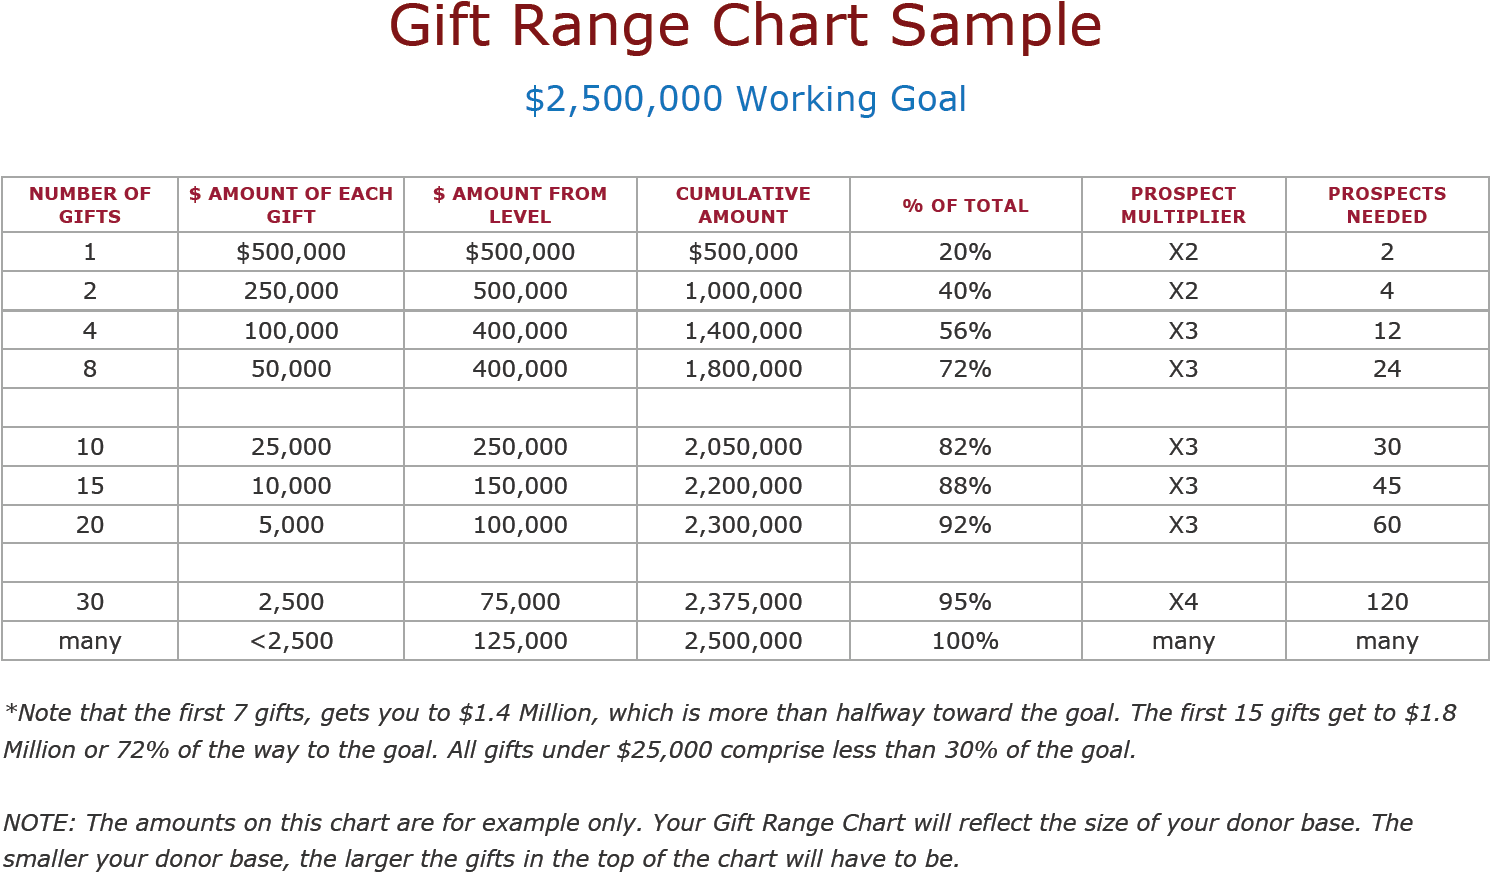 Sample Capital Campaign Gift Range Chart